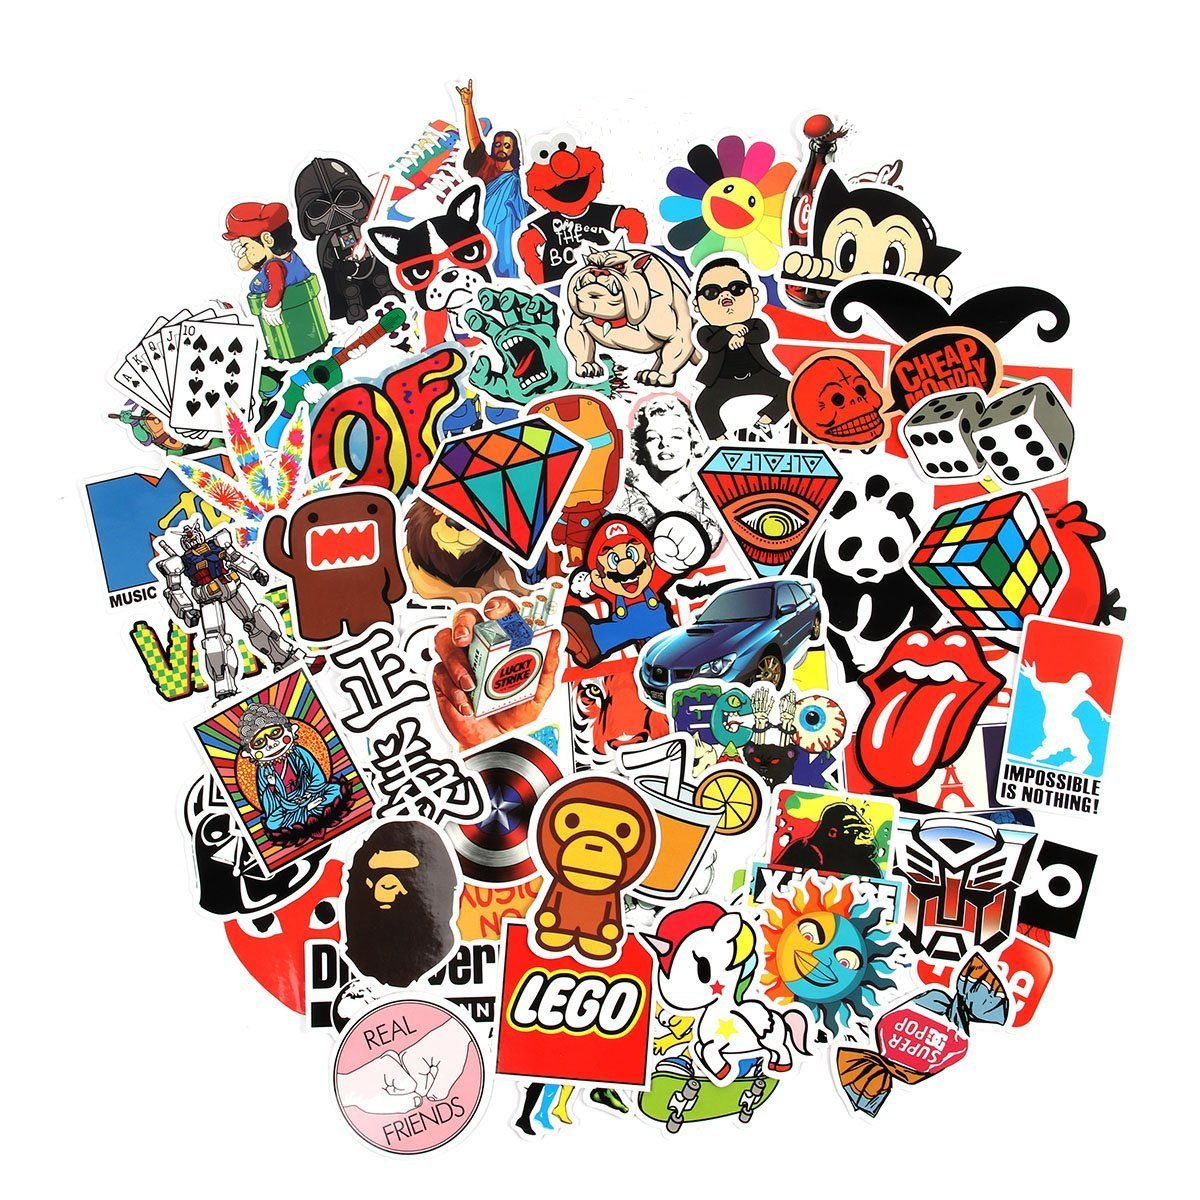 Chnlml love sticker pack 100 pcscool sticker decals vinyls for laptopkidscarsmotorcyclebicycleskateboard luggagebumper stickers hippie decals bomb